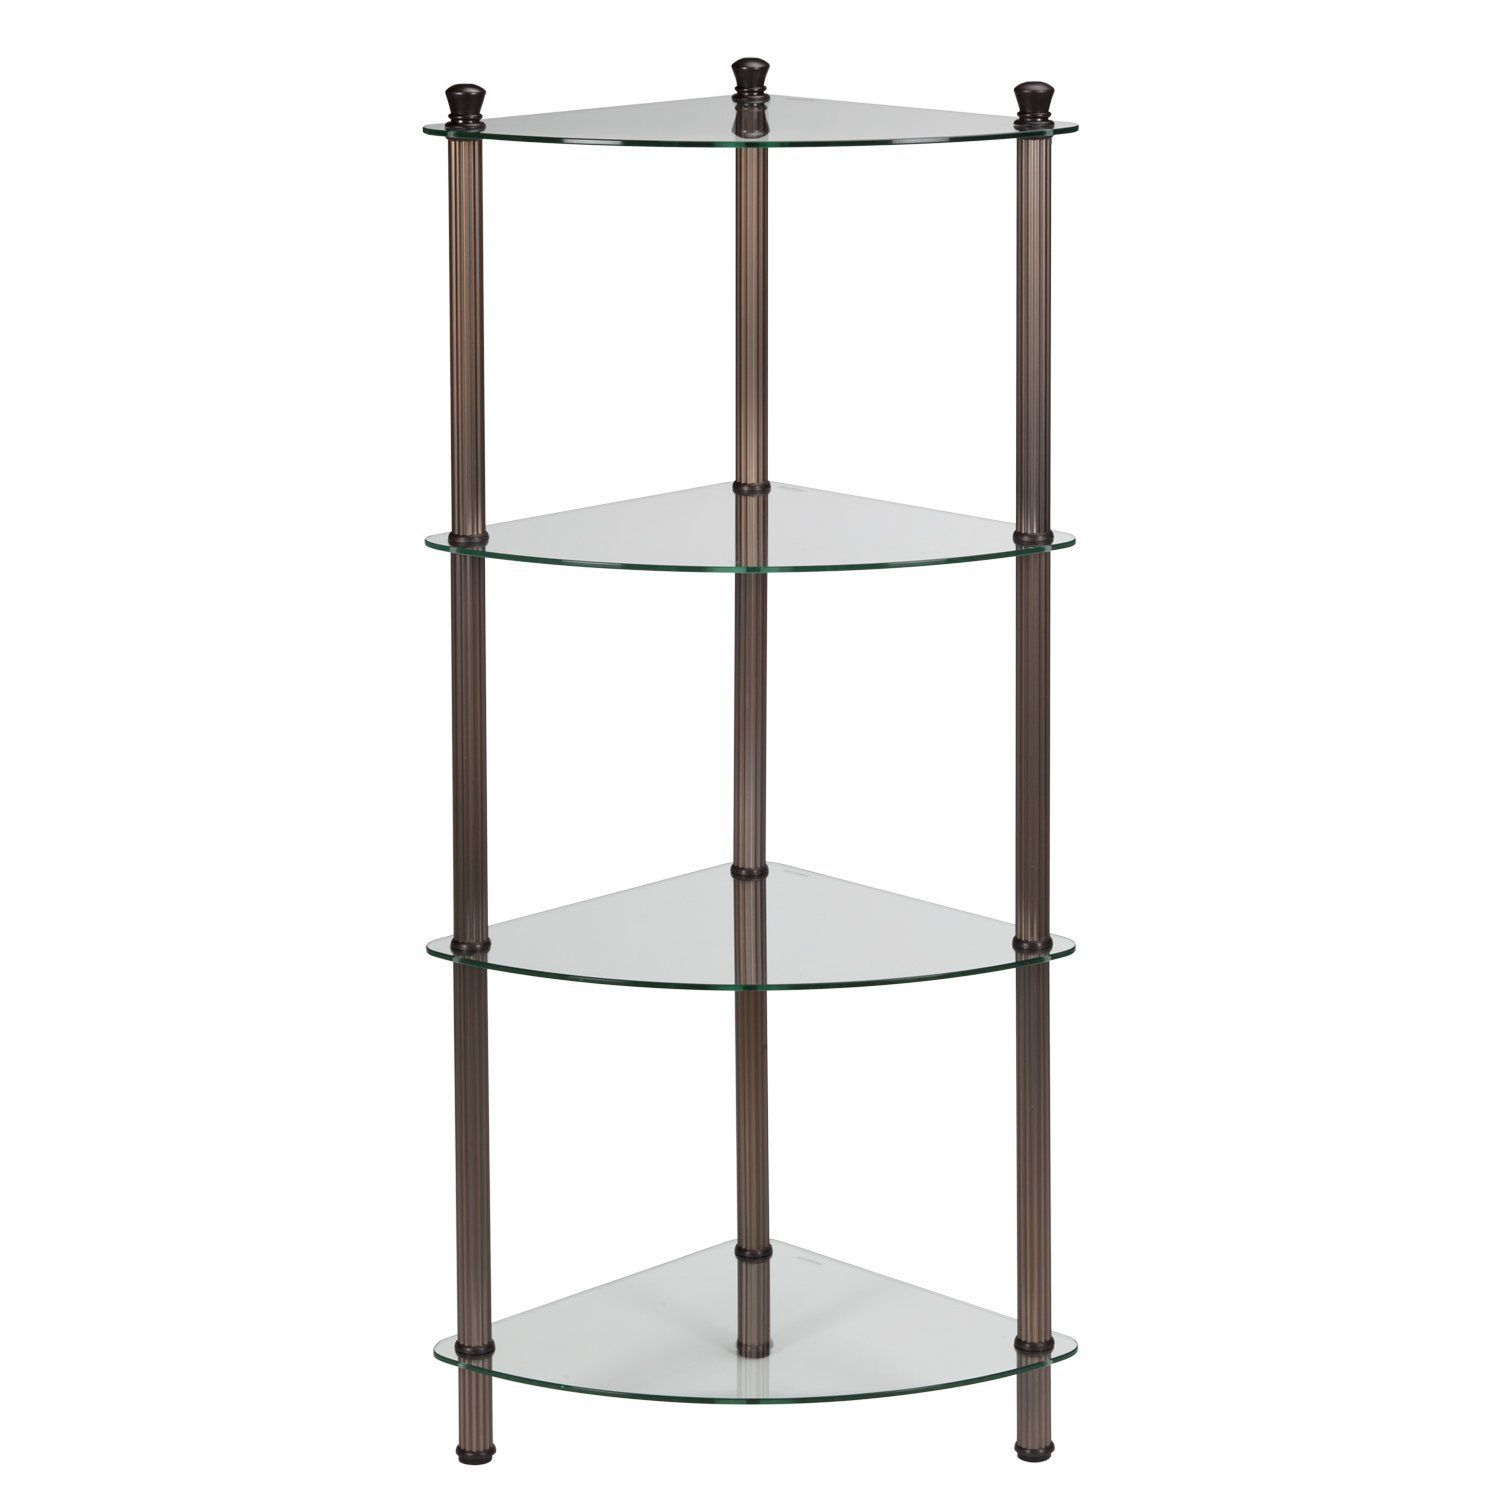 saver space l over nobailout etagere bathroom shelves toilet